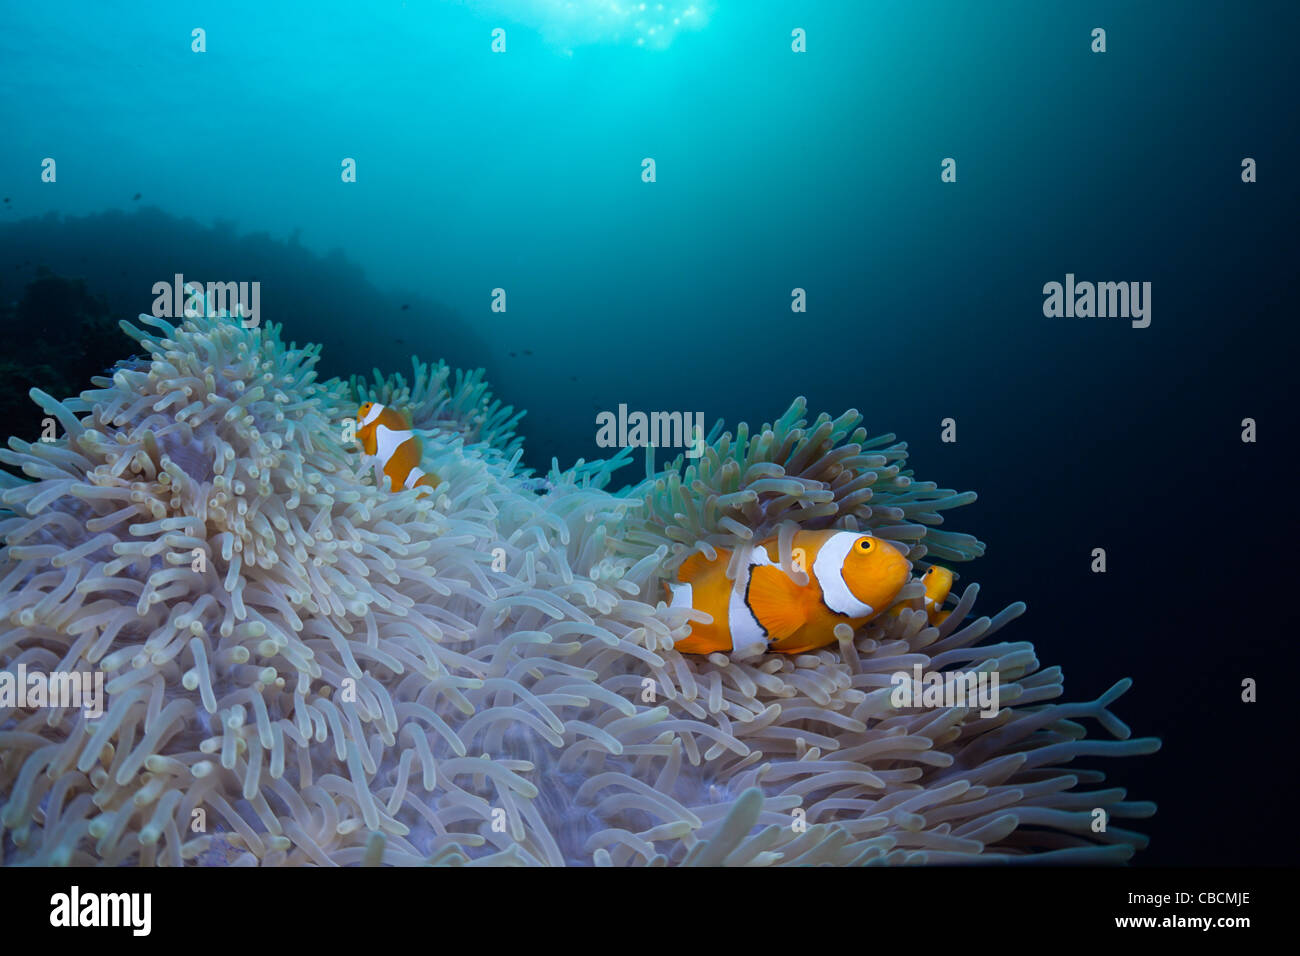 Clown Anemonefish in bleached Sea Anemone, Amphiprion ocellaris, Heteractis magnifica, West Papua, Indonesia - Stock Image